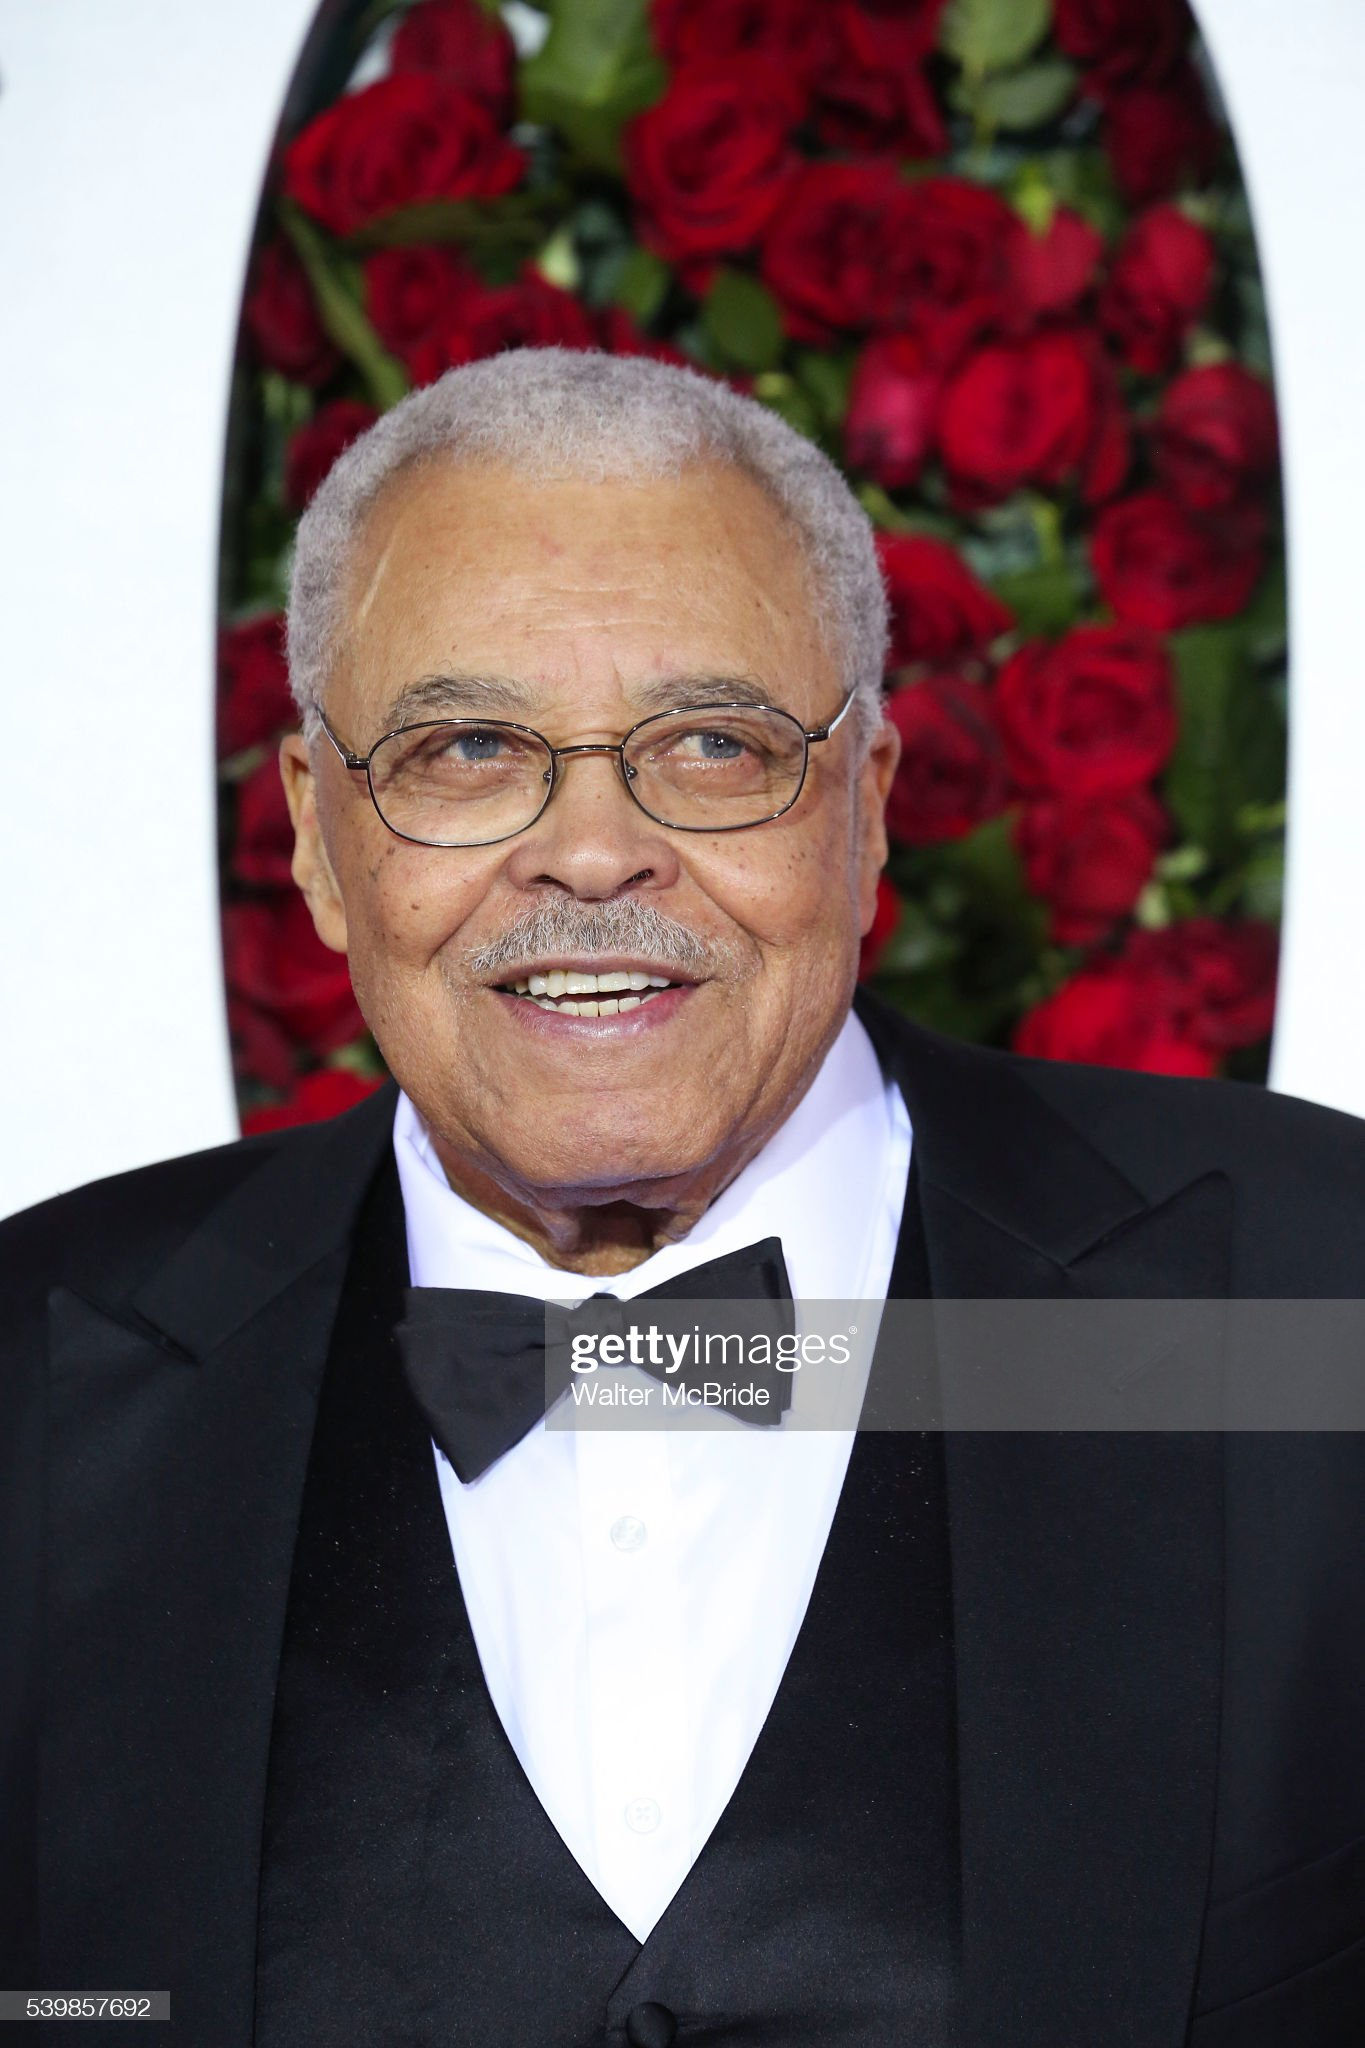 COLOR DE OJOS (clasificación y debate de personas famosas) - Página 11 James-earl-jones-attends-the-70th-annual-tony-awards-at-the-beacon-picture-id539857692?s=2048x2048